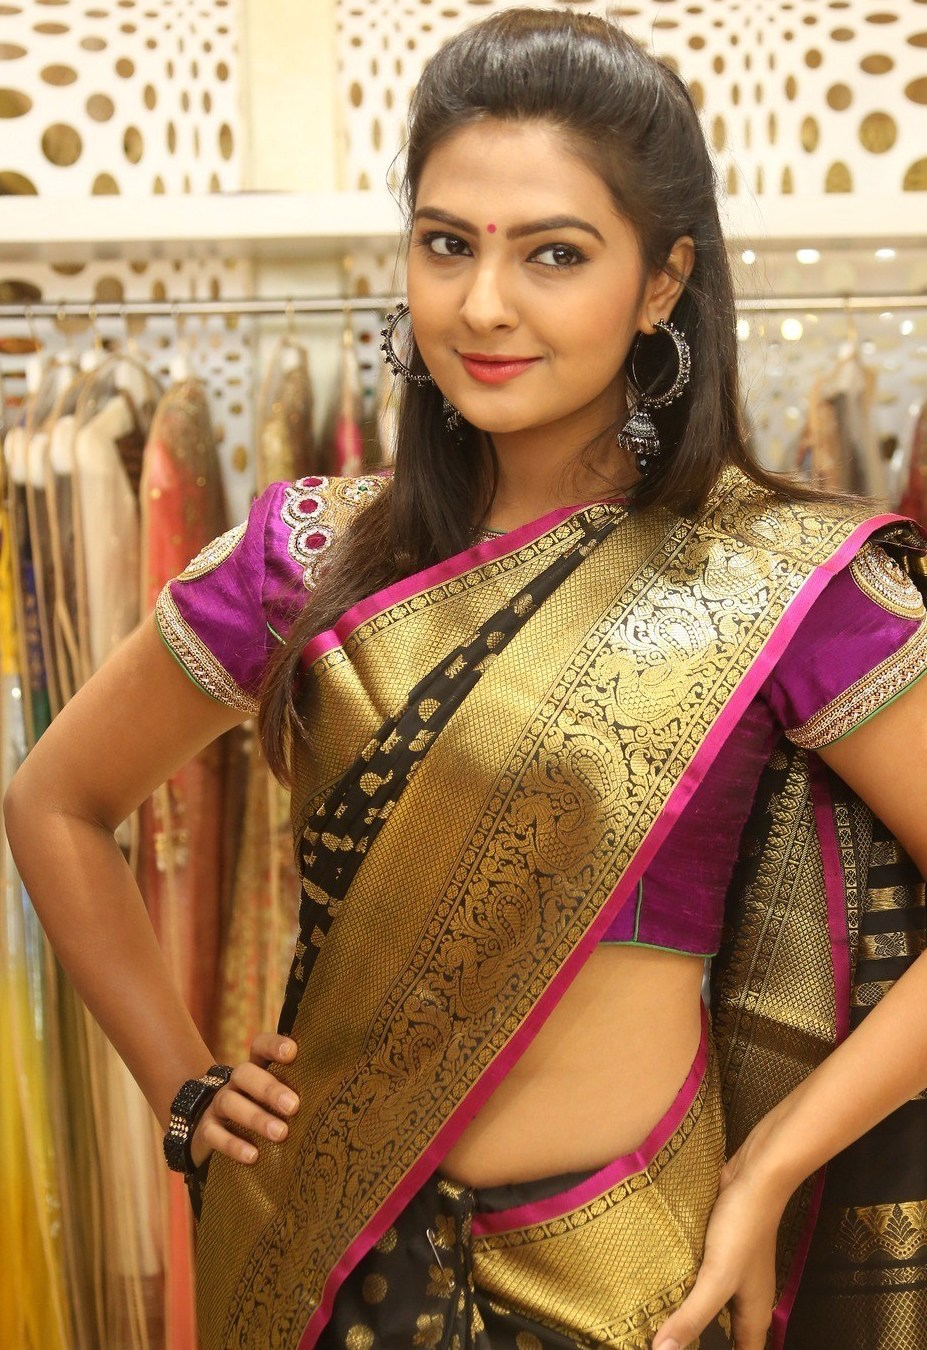 South Indian Hot Girl Neha Deshpande Hip Navel In Traditional Black Saree